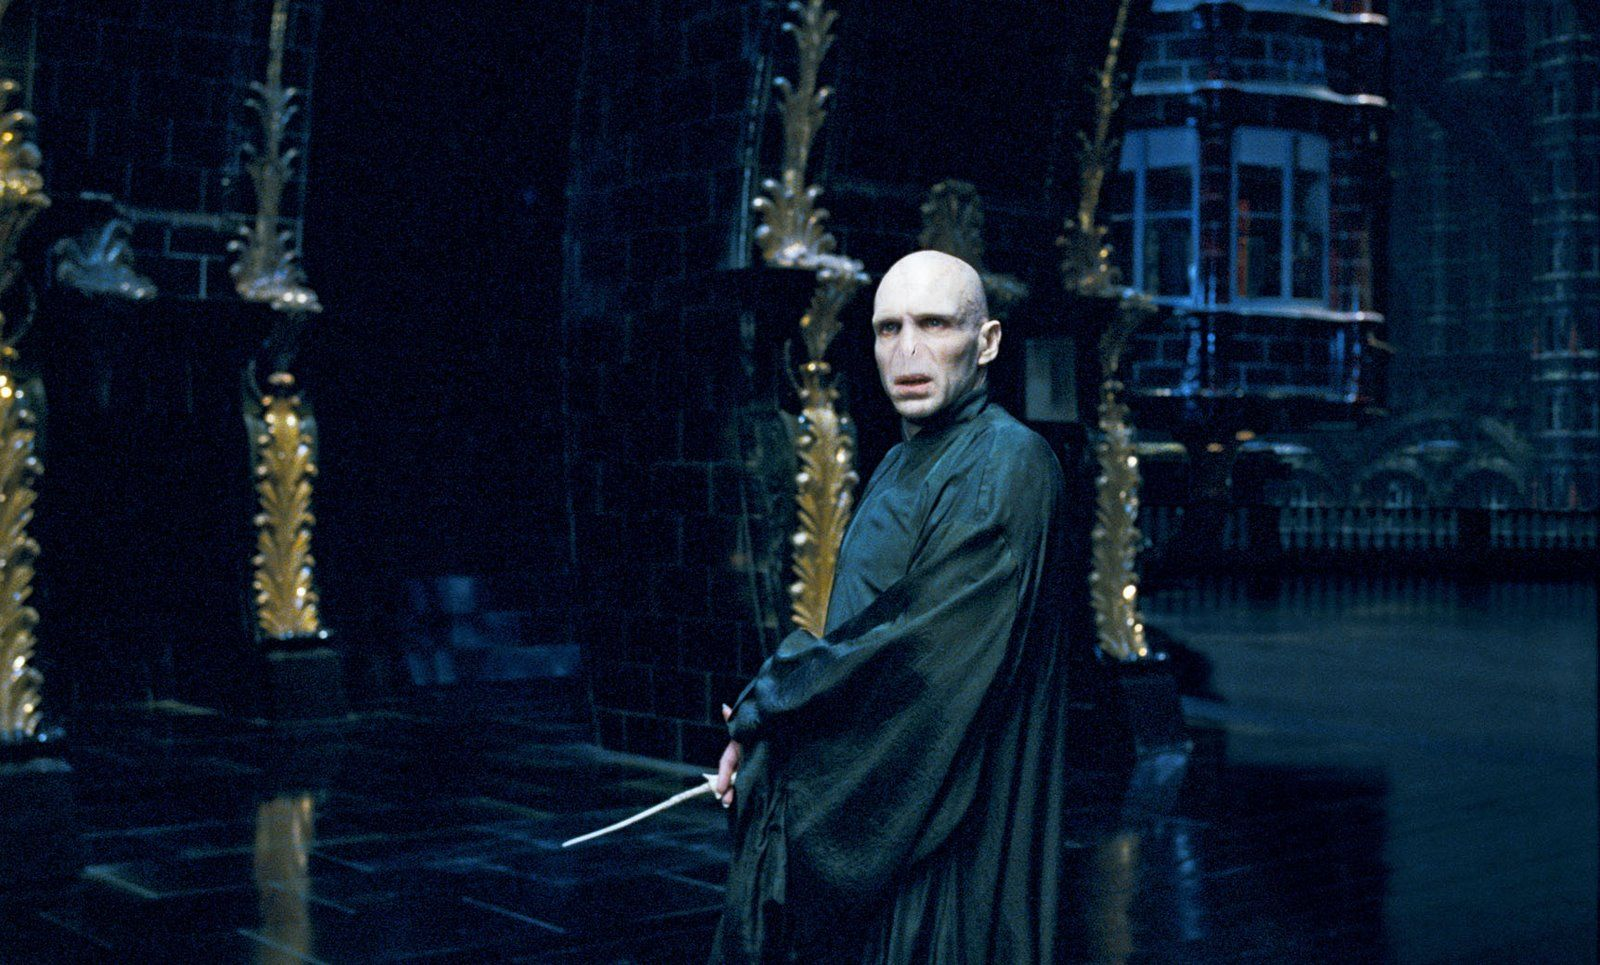 harry potterralph fiennes as lord voldemort | harry potter